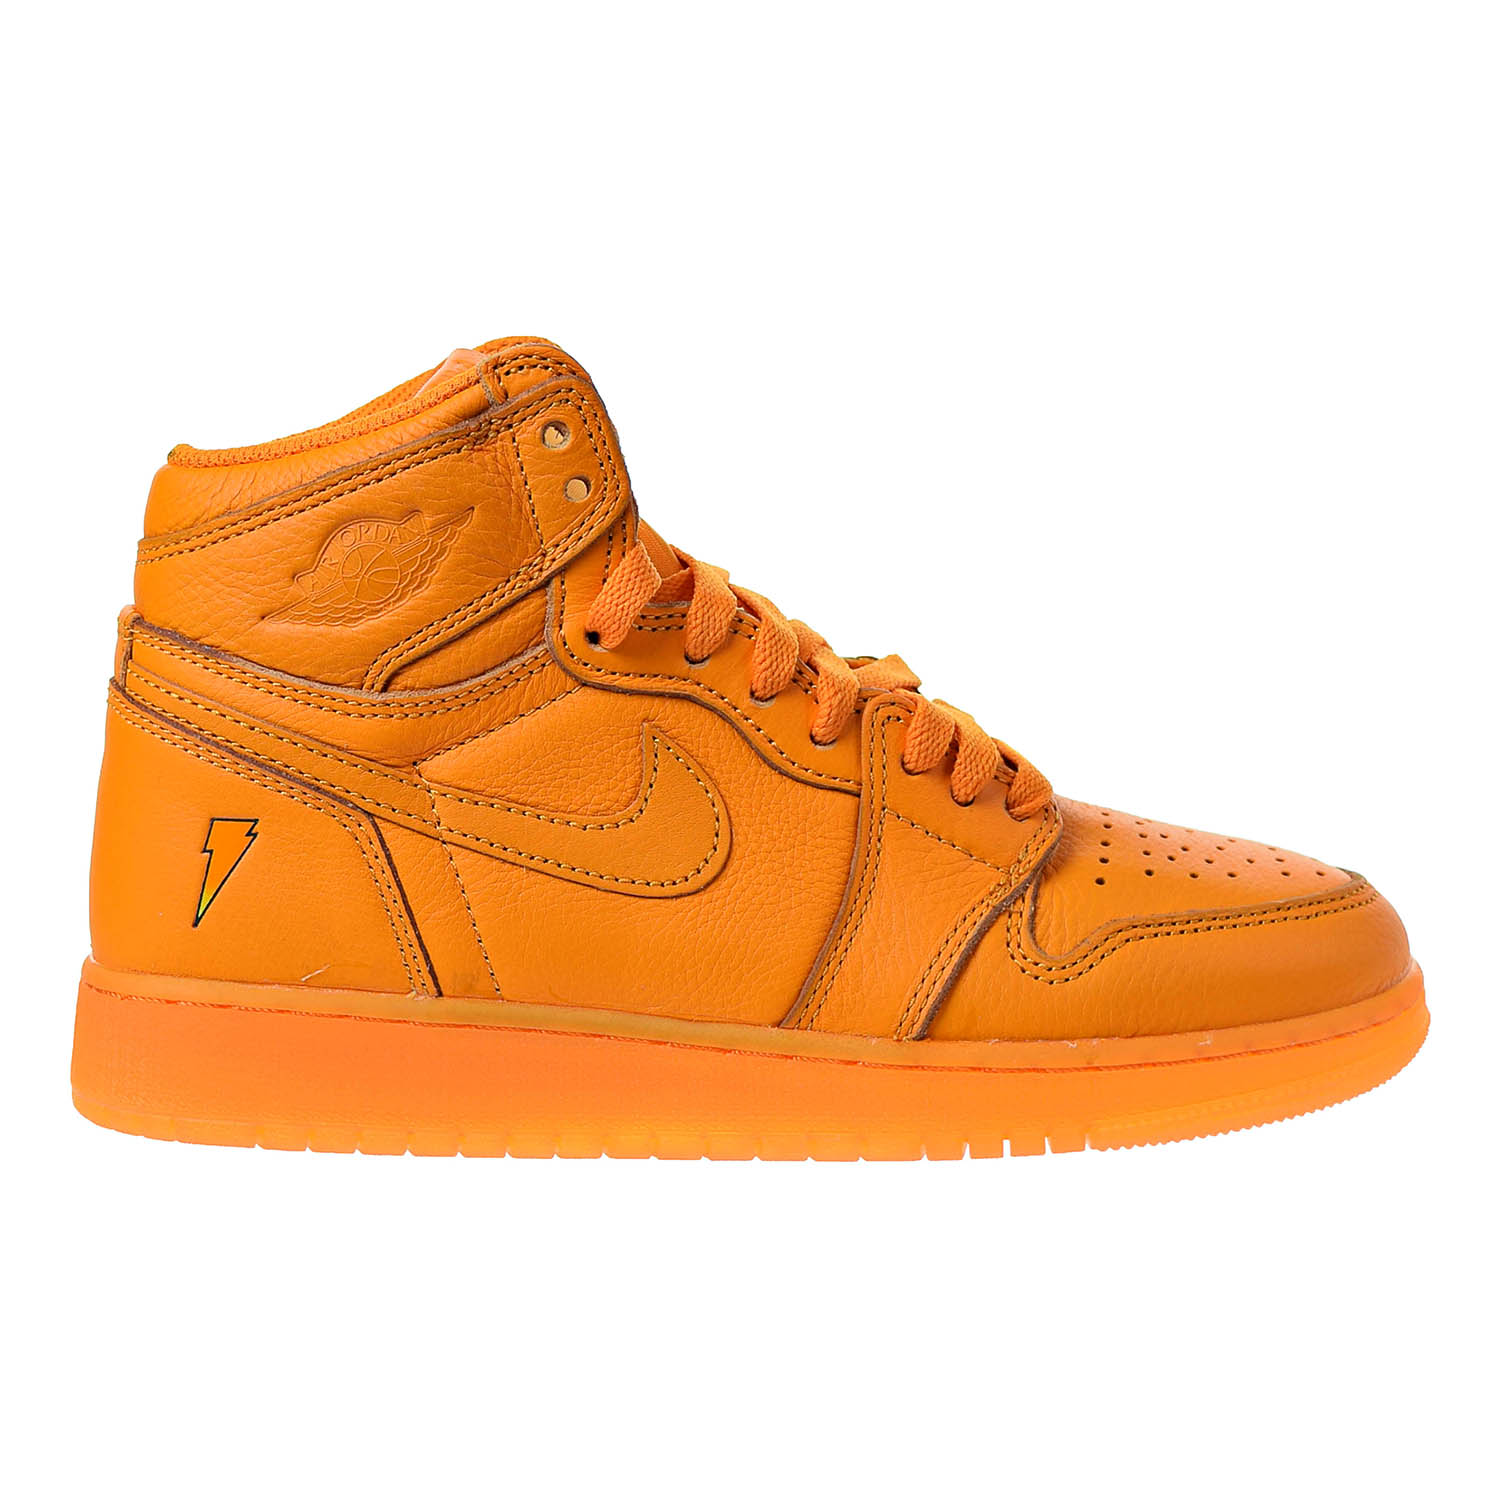 best authentic a6087 b9262 Details about Air Jordan 1 Retro High Gatorade Big Kids' Sneakers Orange  Peel AJ6000-880